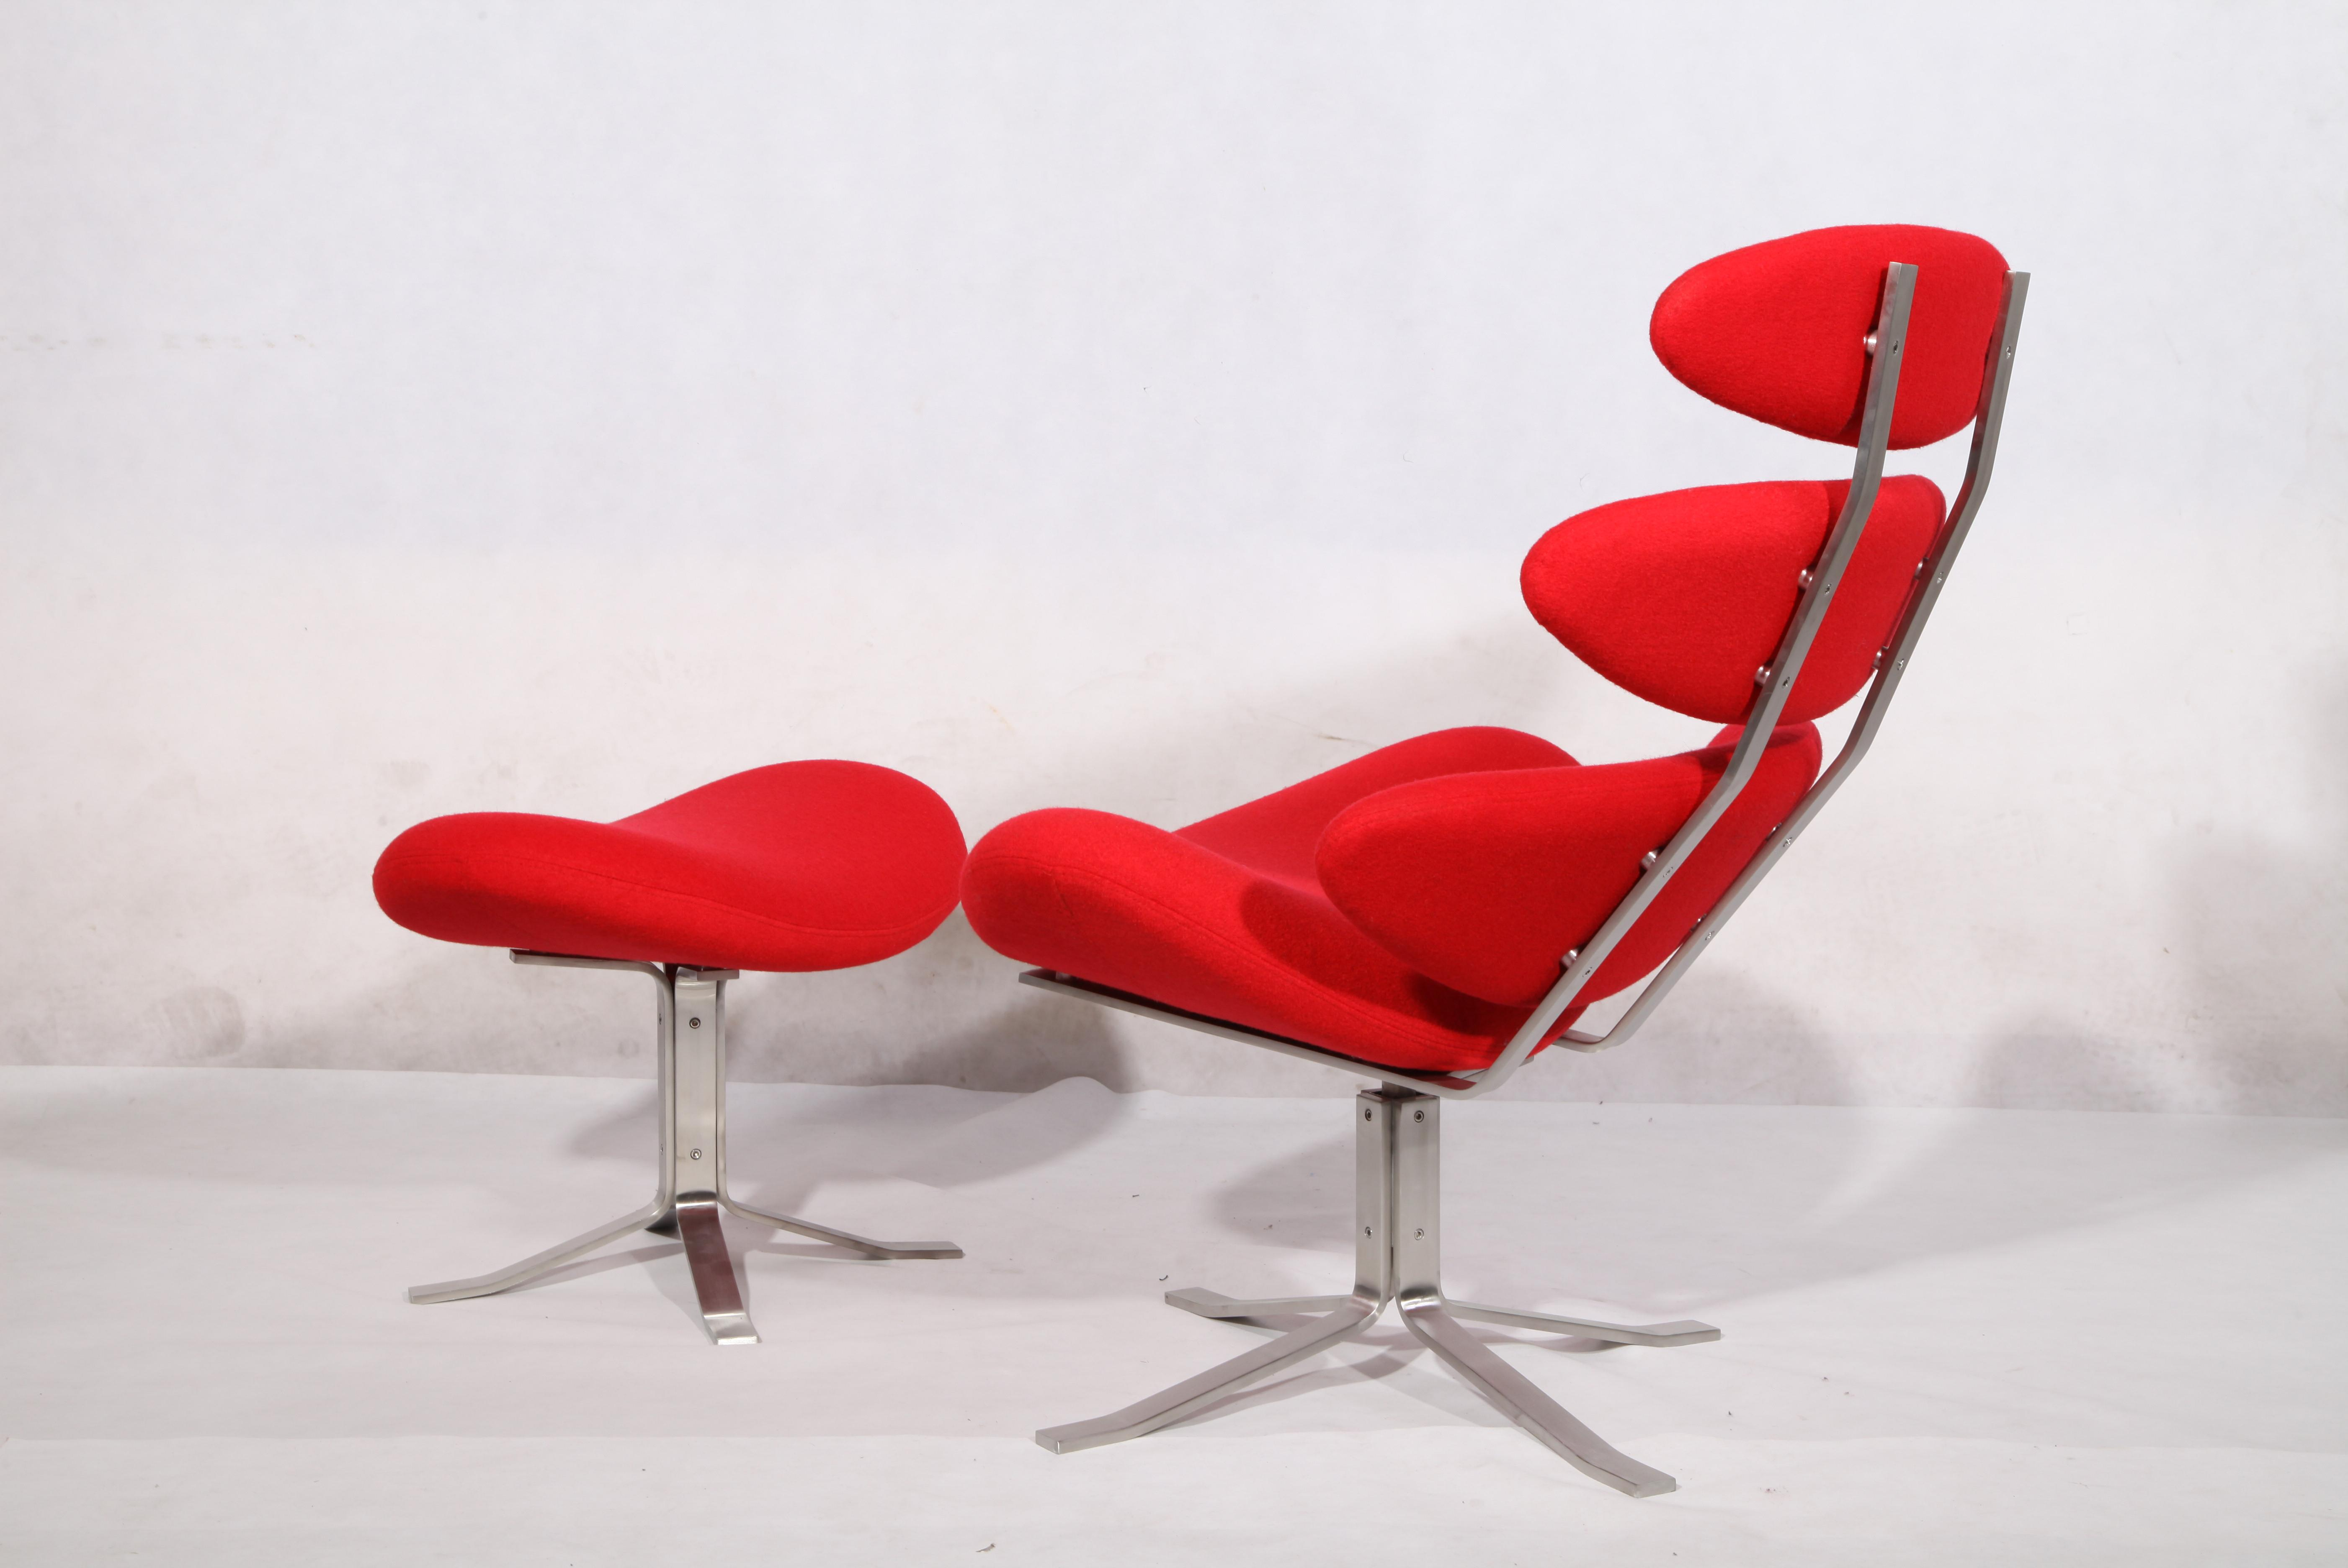 Poul Volther Corona chair